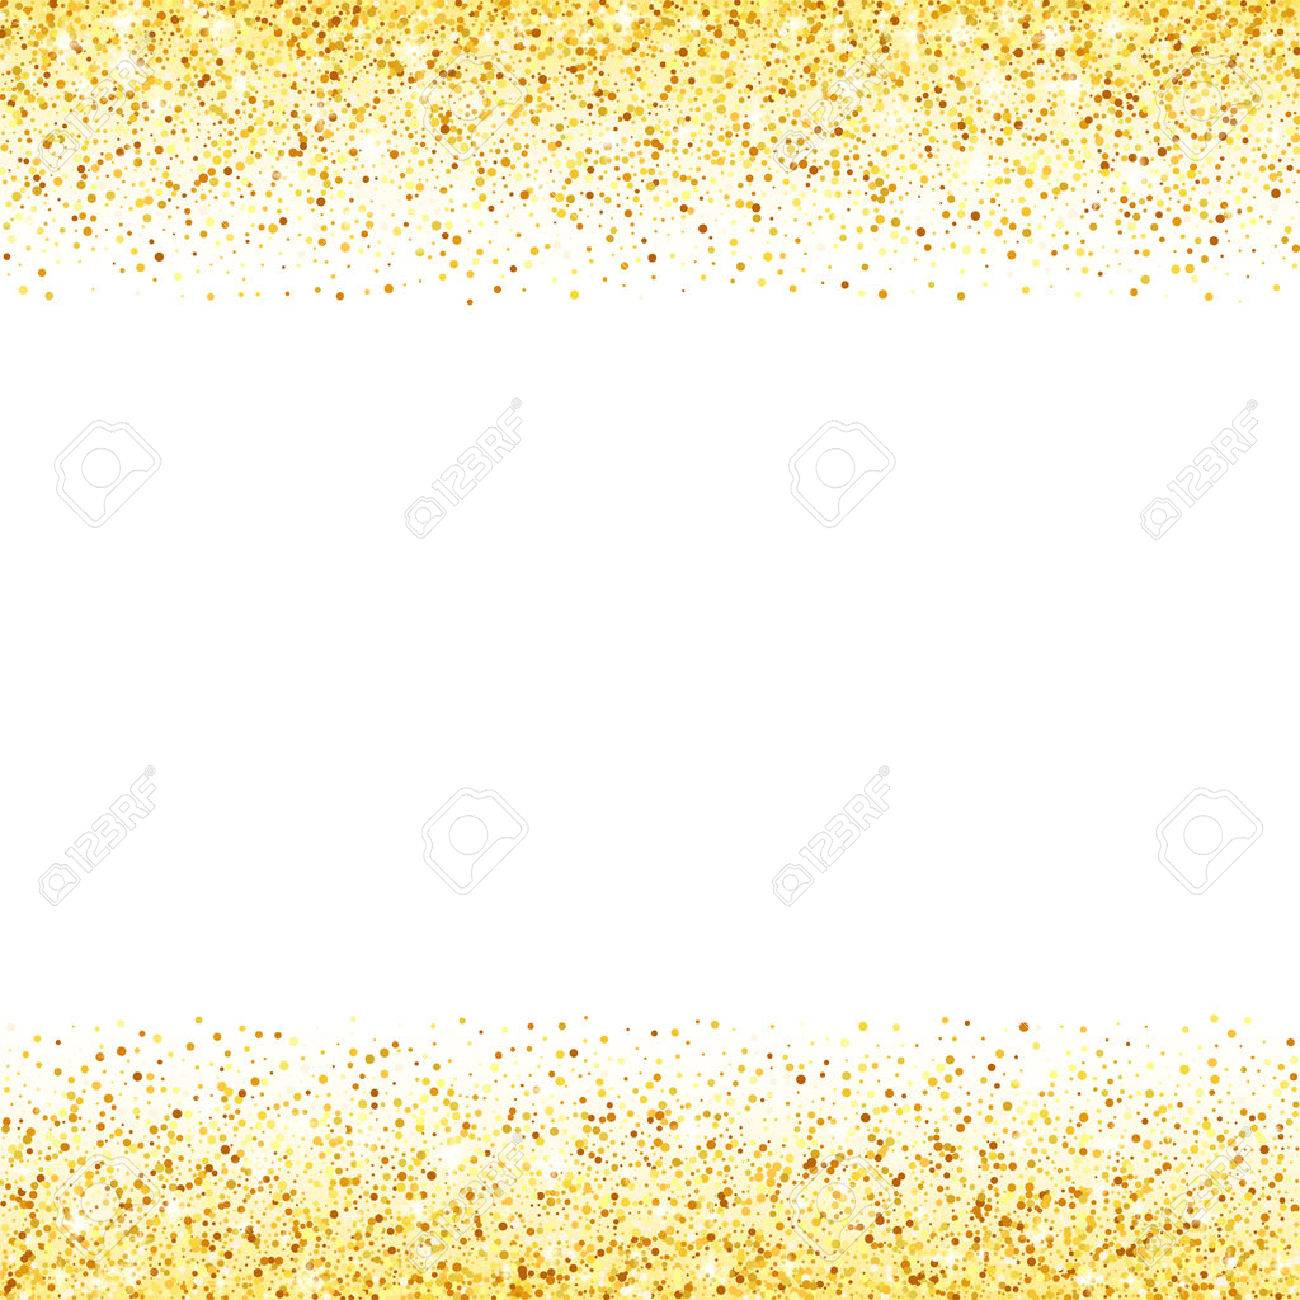 vector gold glitter wave abstract background golden sparkles